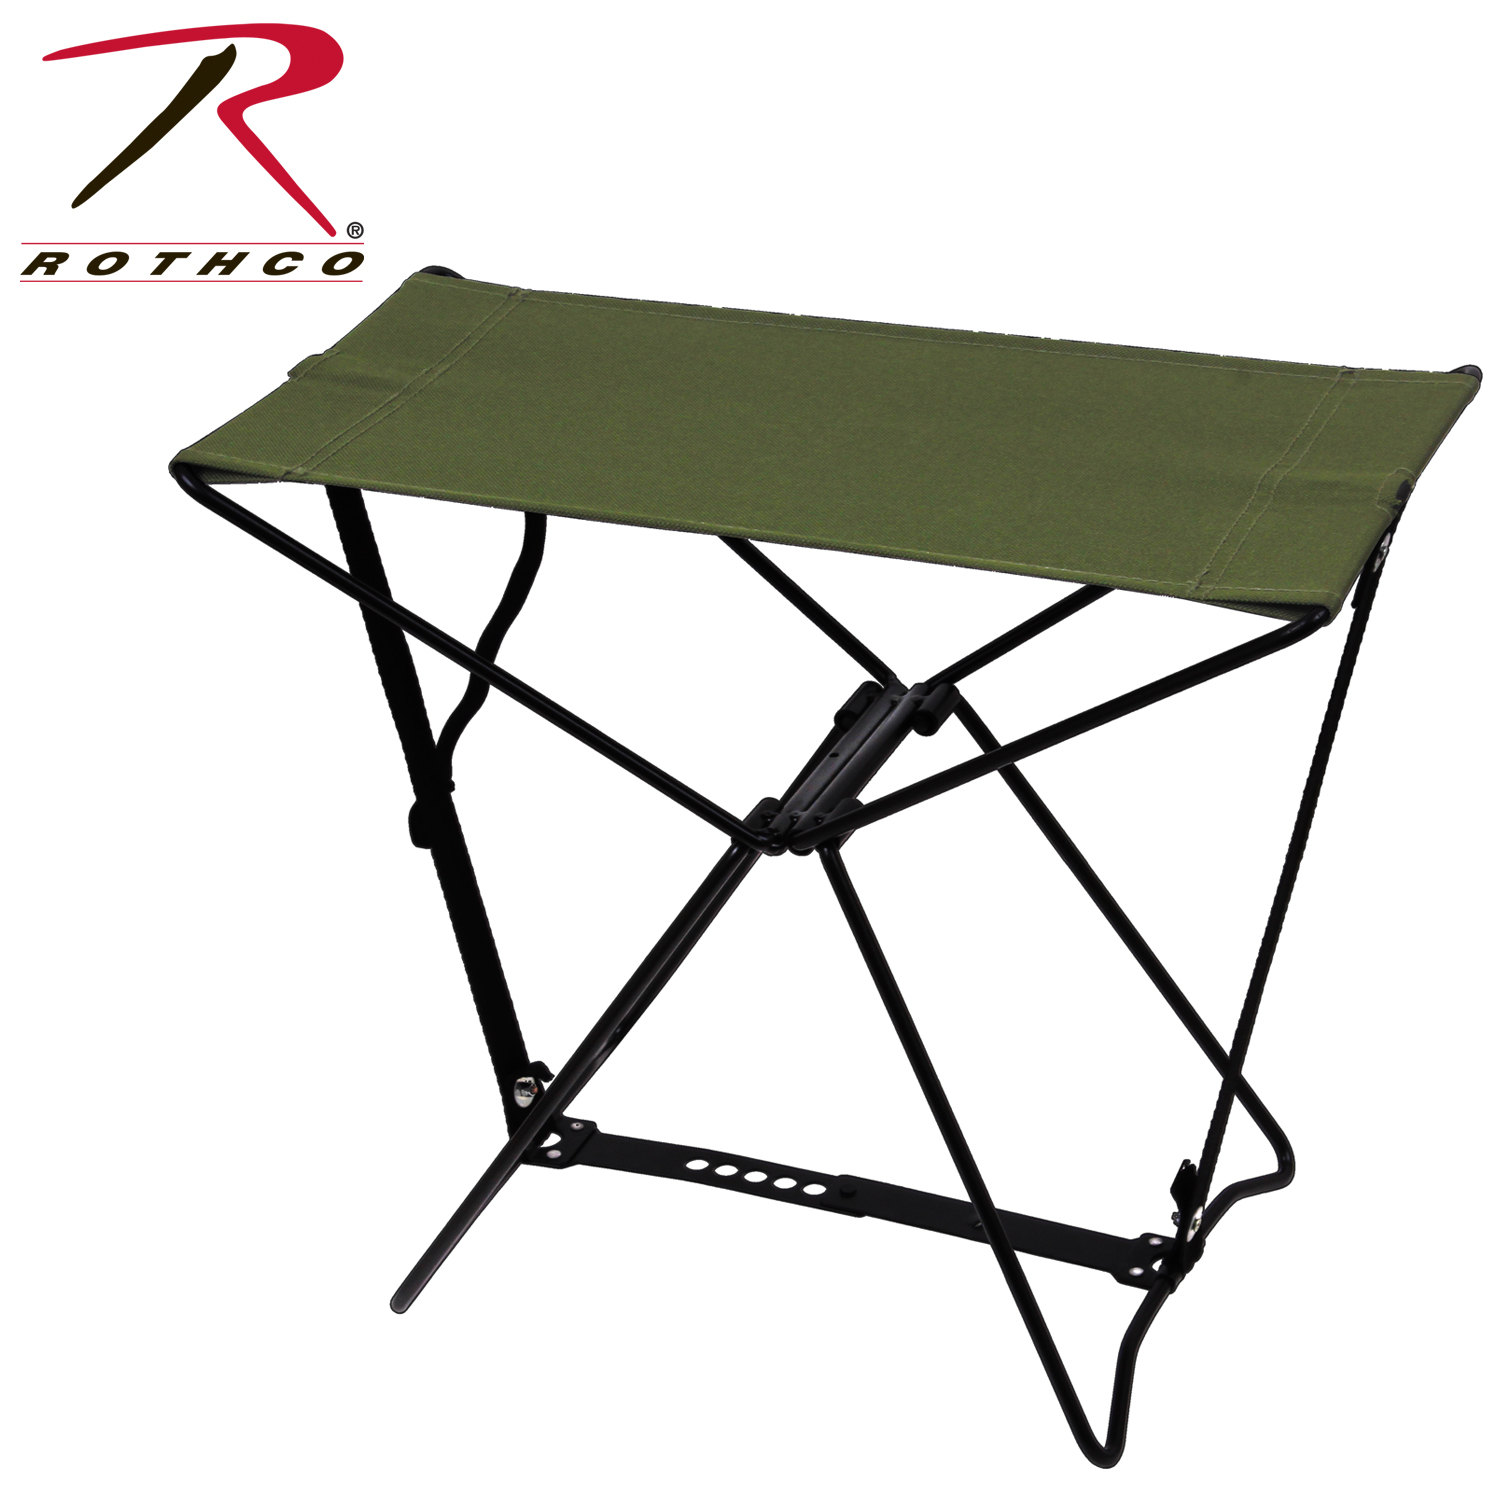 Rothco Folding Camp Stool Olive Drab Walmart Com